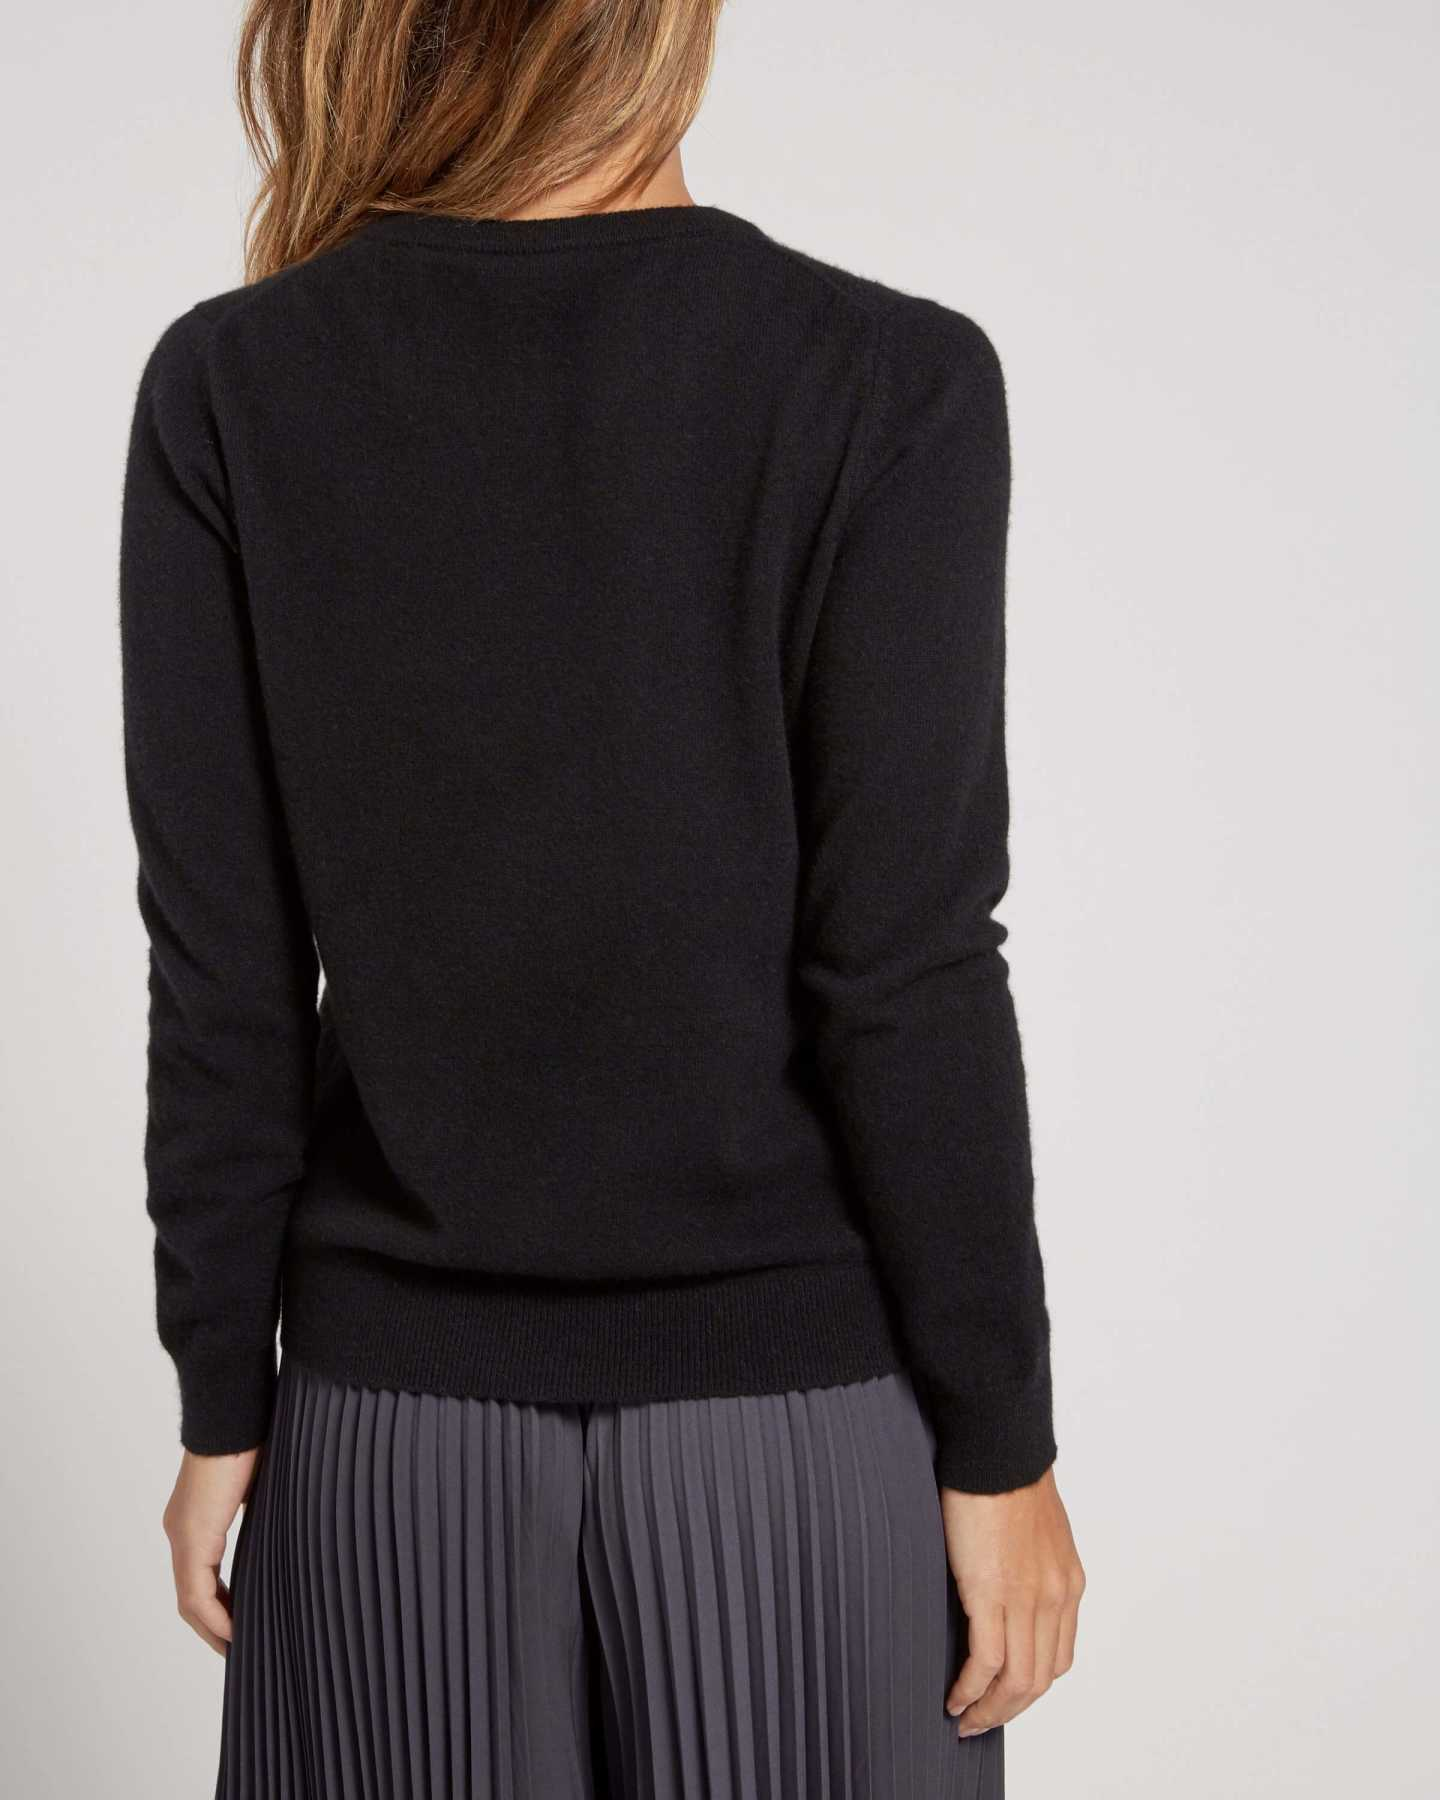 black cashmere sweater women back